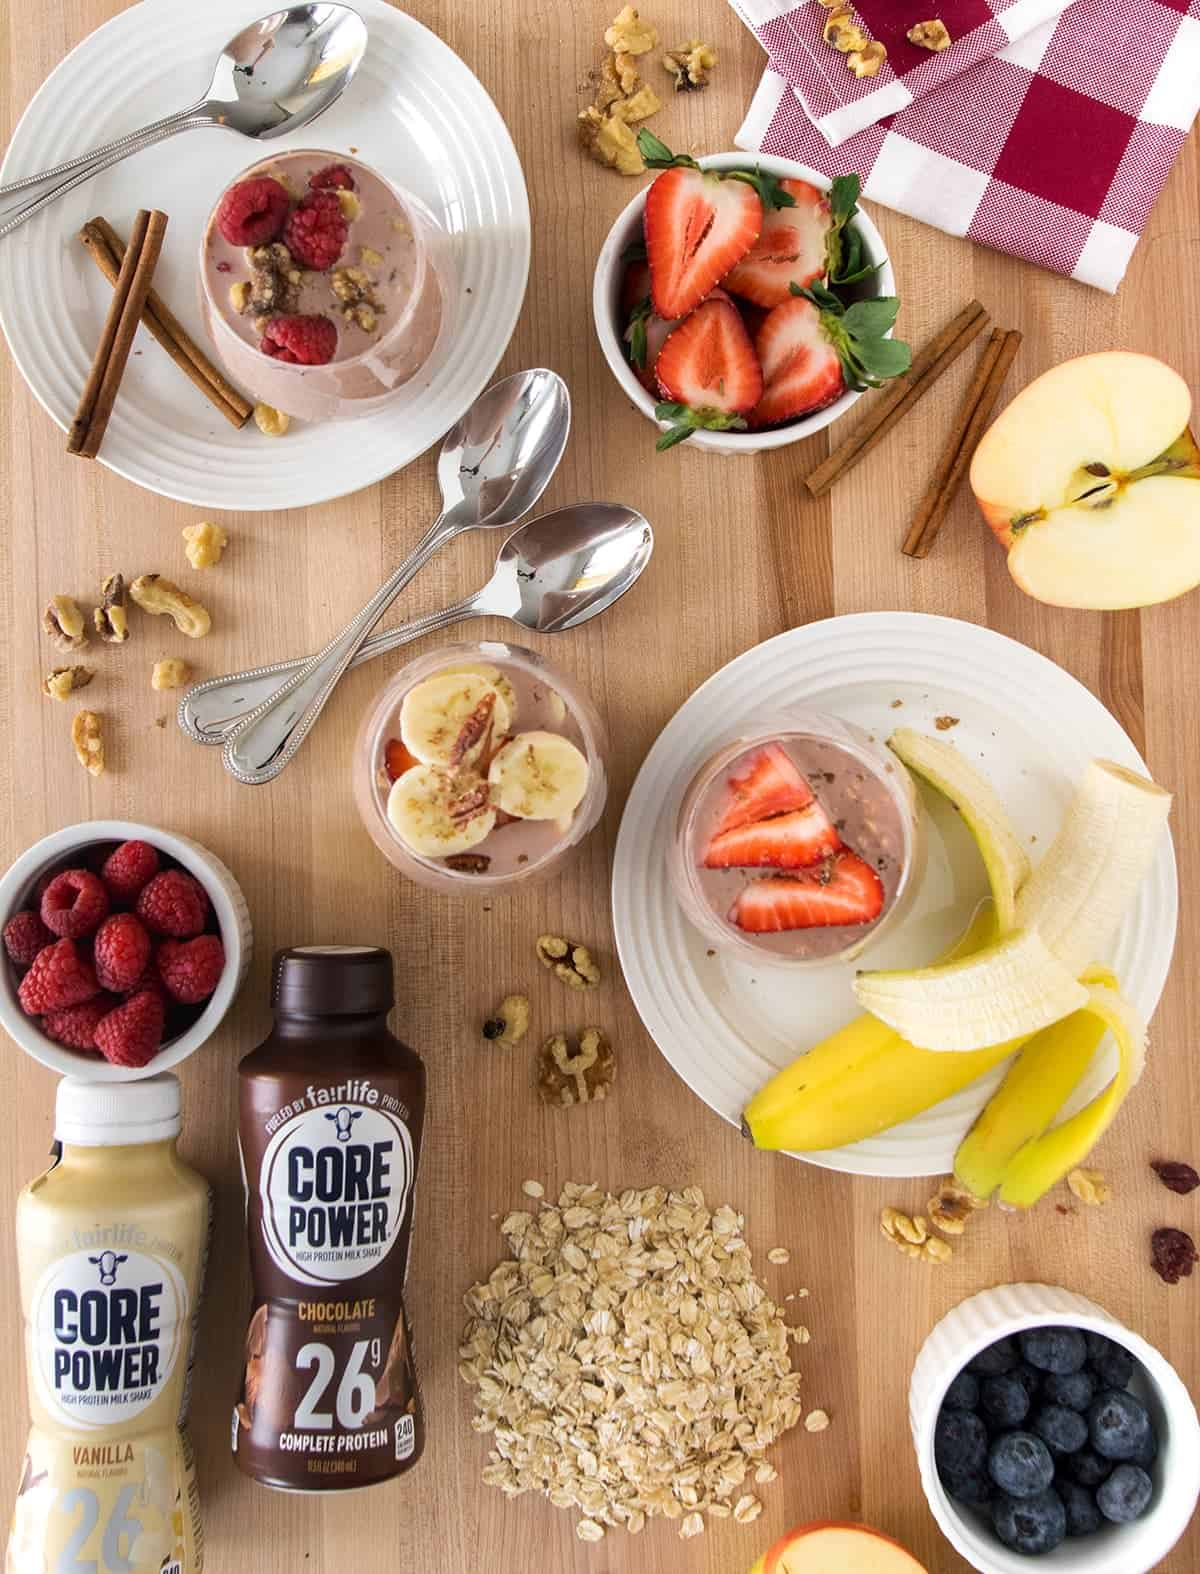 Ingredients for overnight oats on table including protein milk, fruit, oats, spoons, cinnamon.